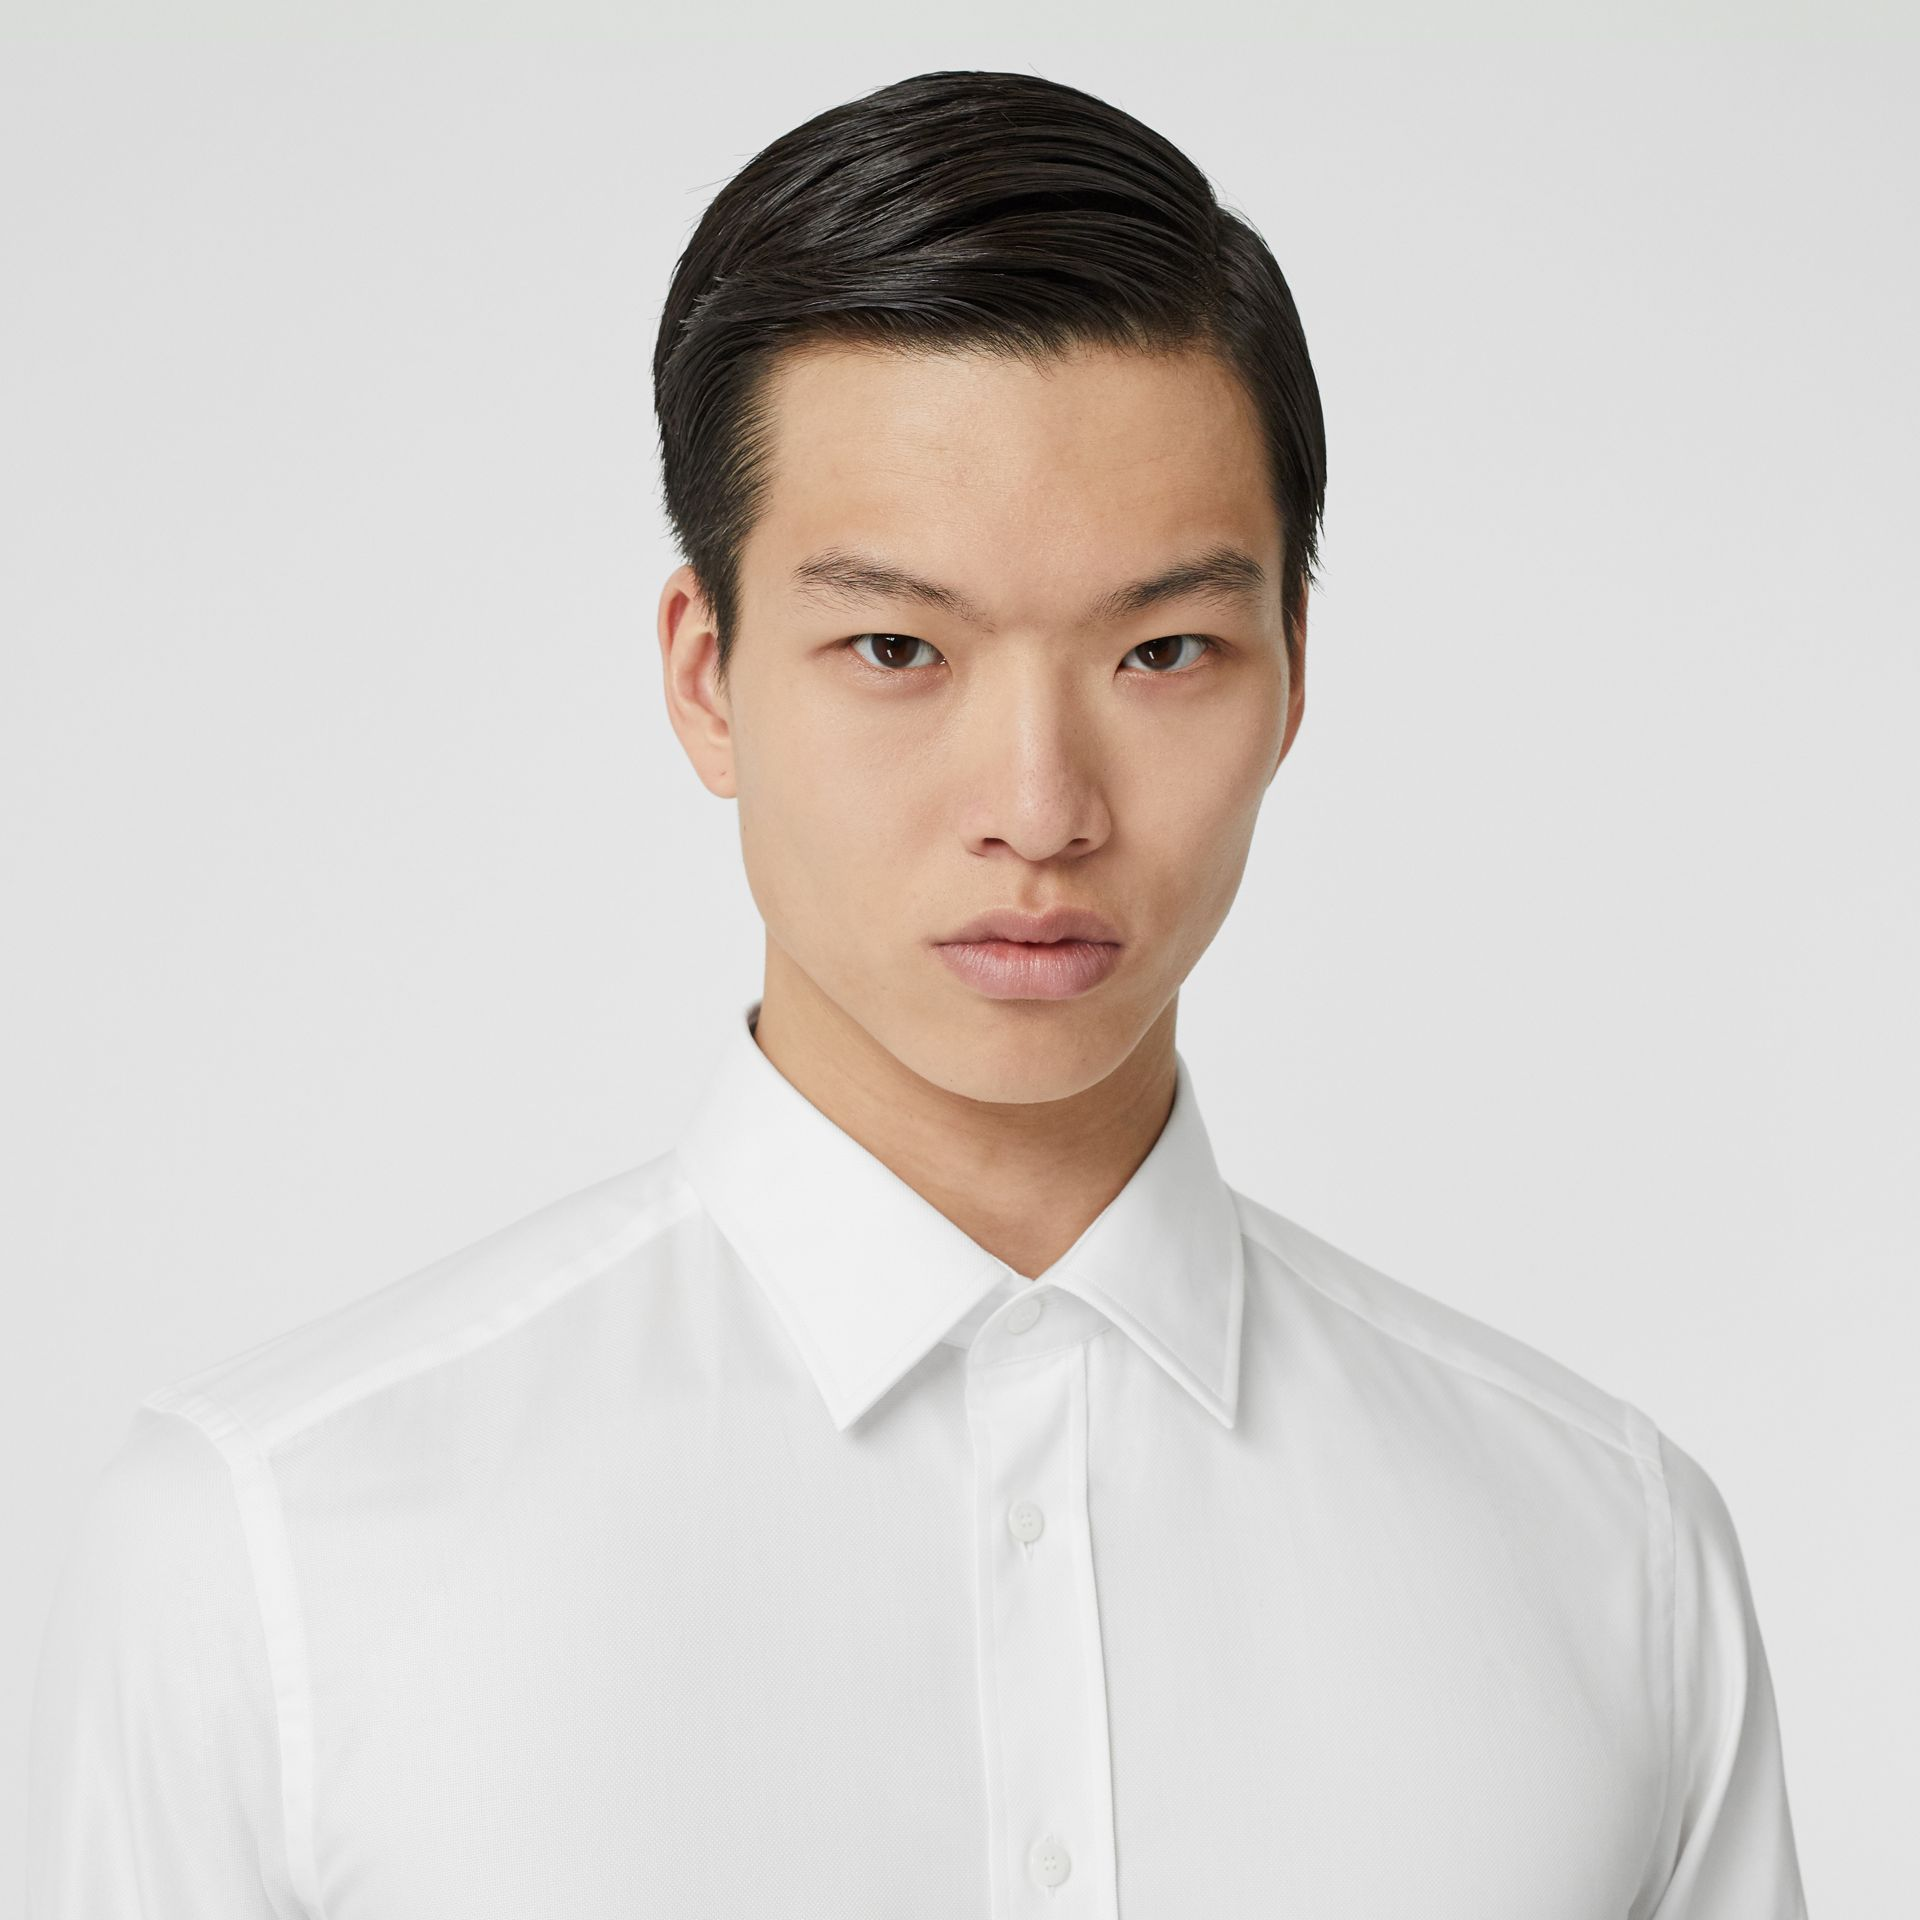 Classic Fit Monogram Motif Cotton Oxford Shirt in White - Men | Burberry United States - gallery image 7